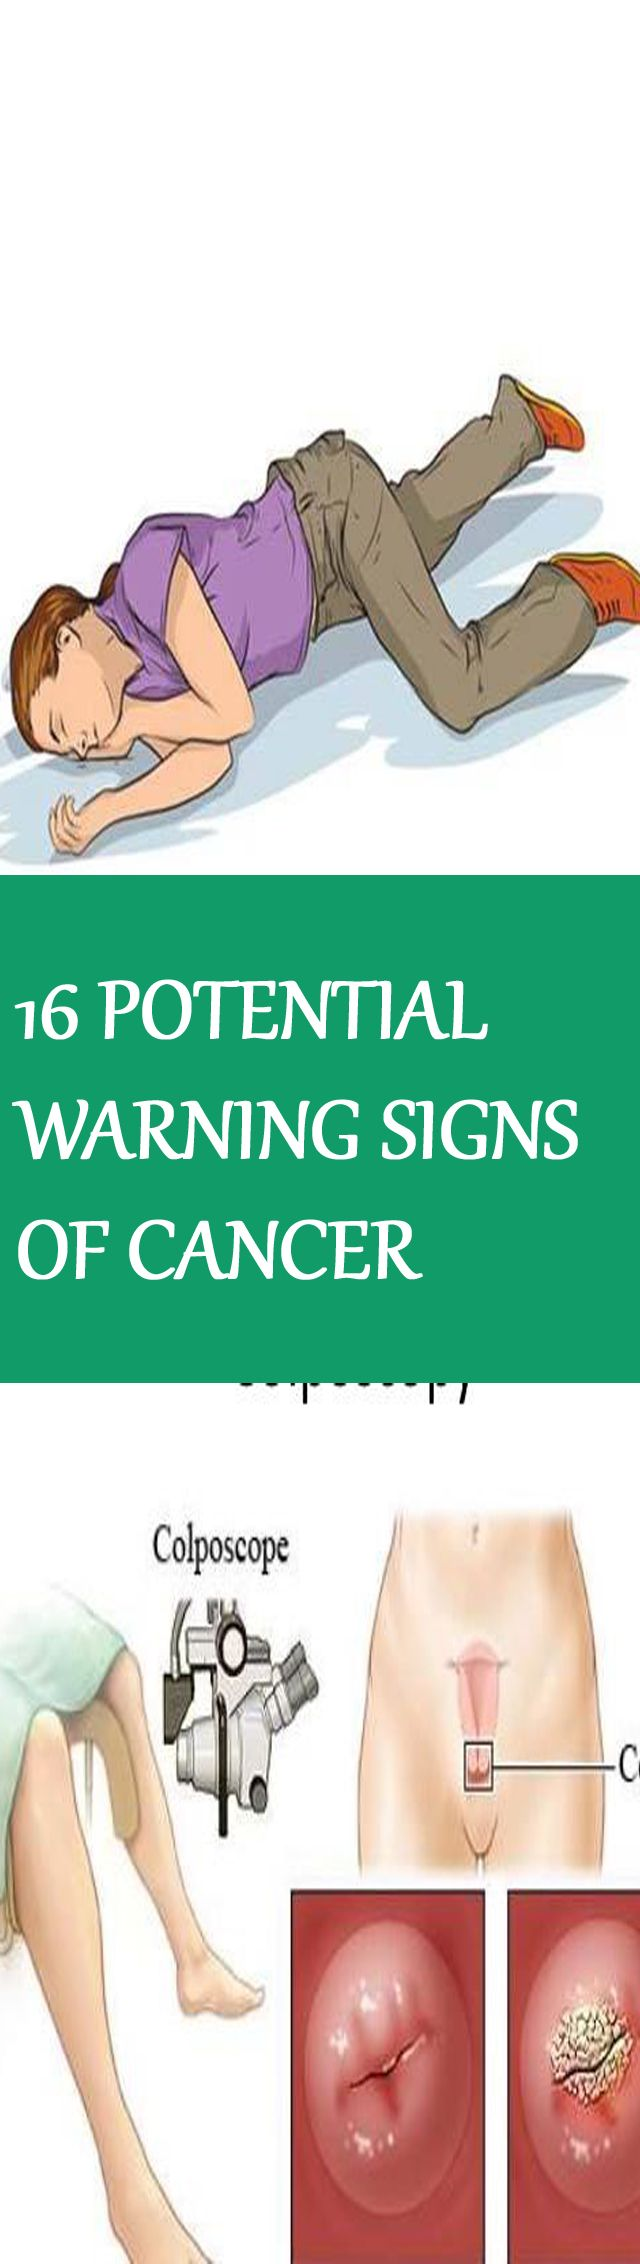 16 POTENTIAL WARNING SIGNS OF CANCER THAT PEOPLE TOO OFTEN IGNORE